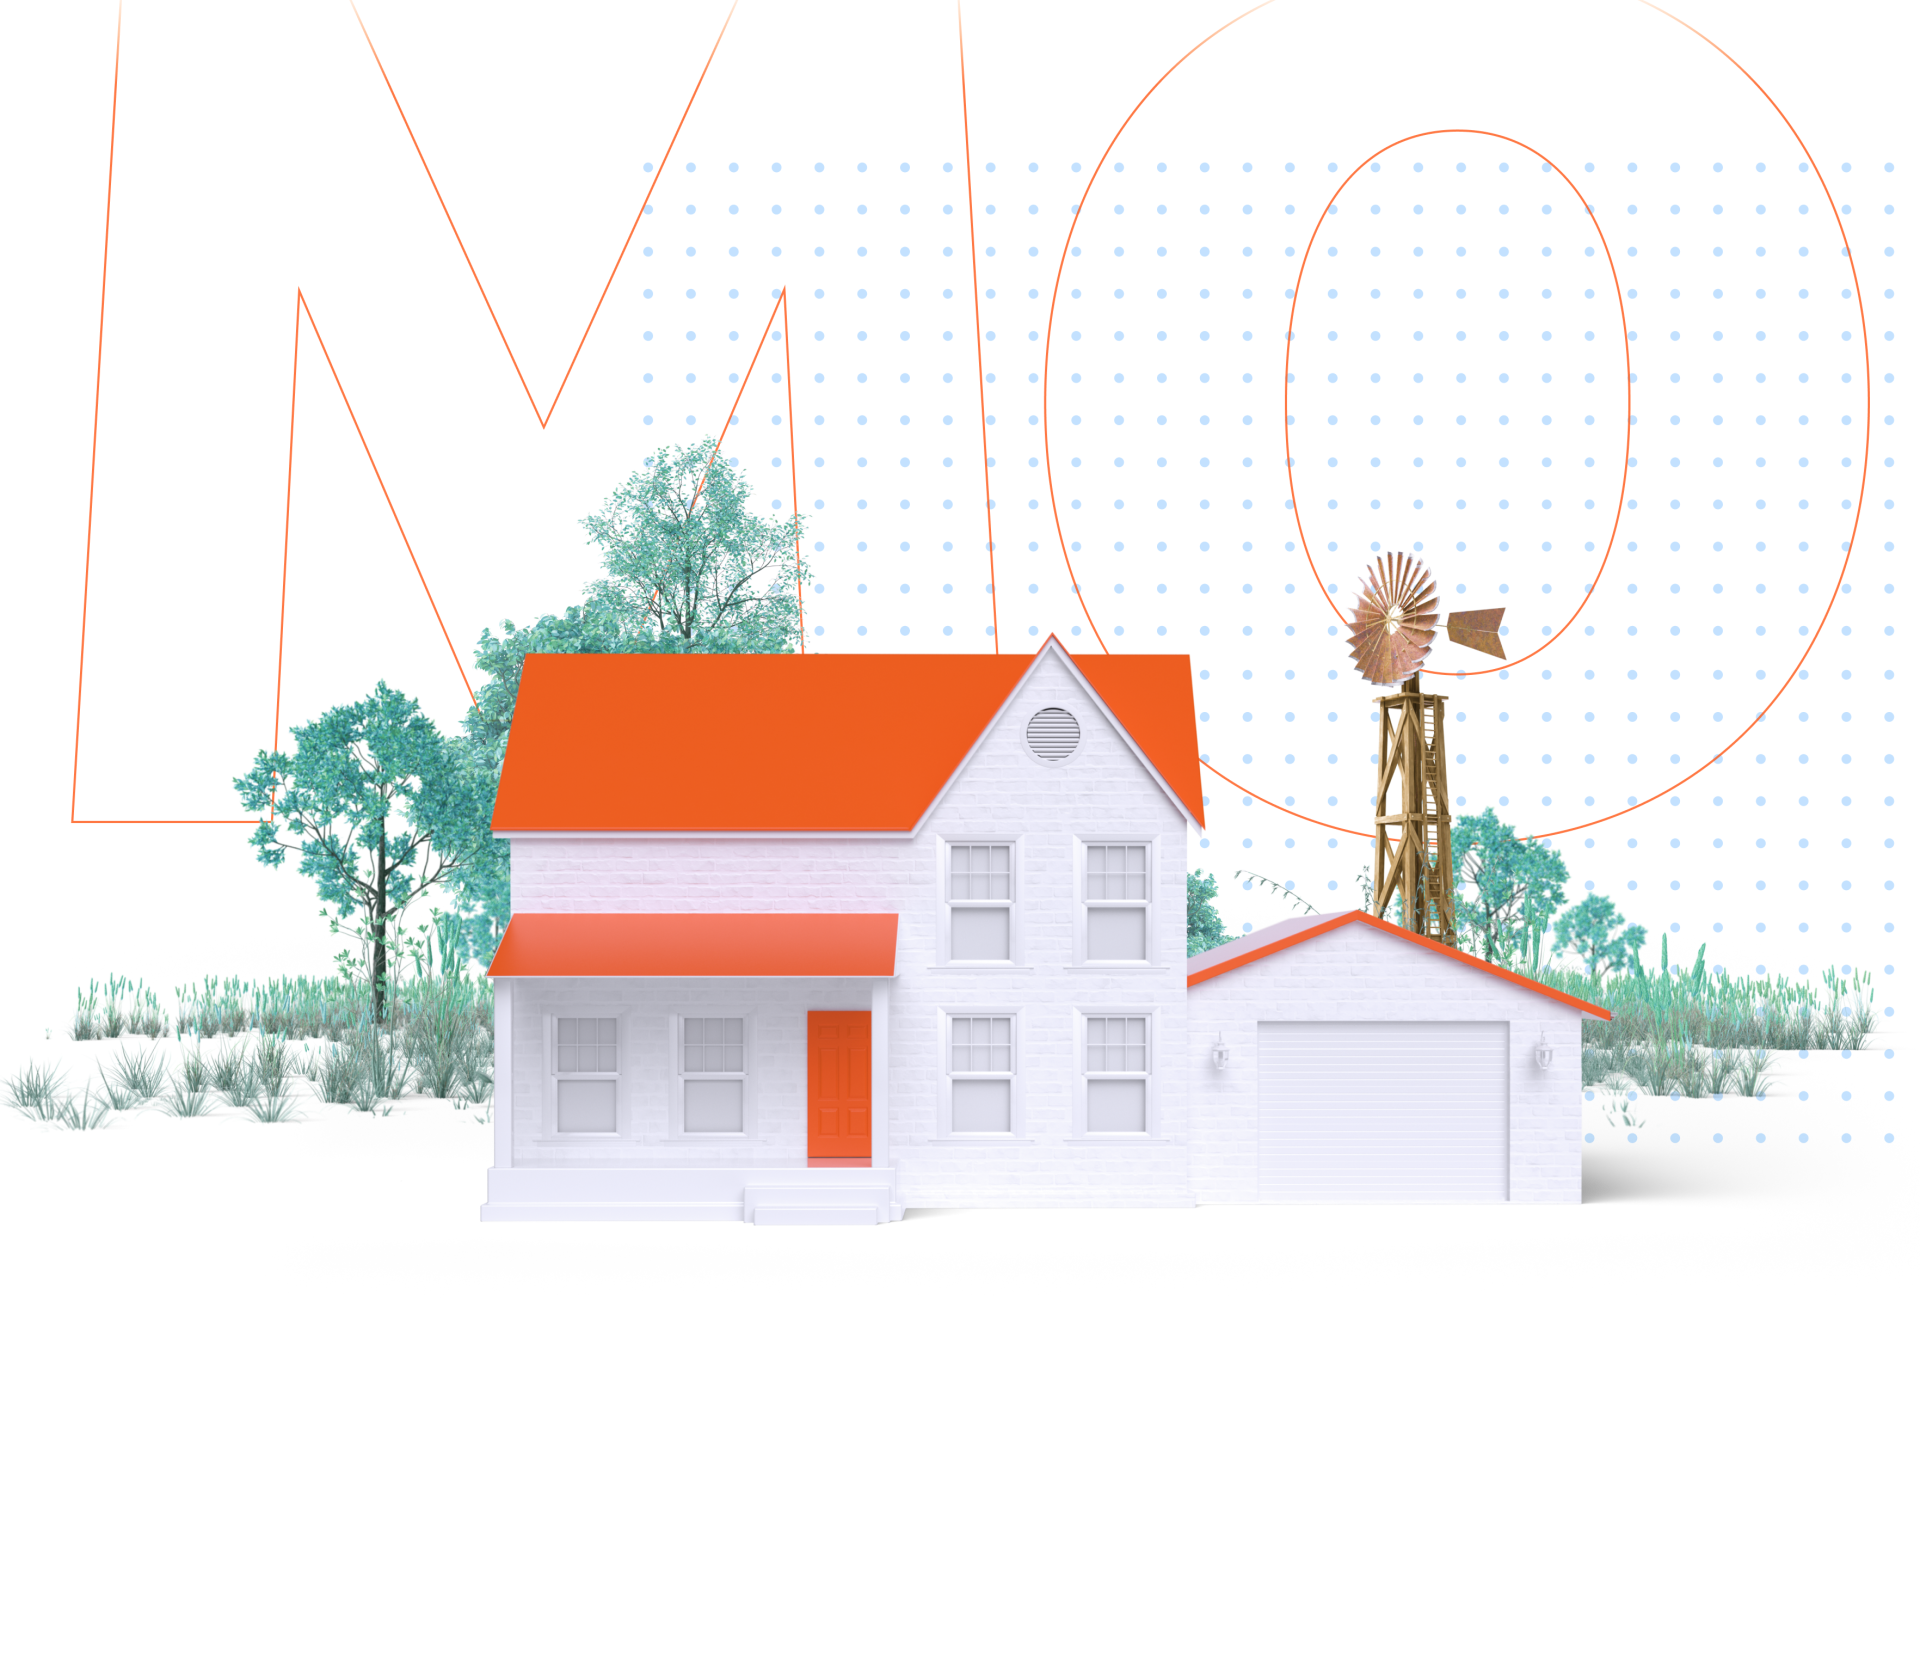 House in front of trees with a windmill and the abbreviation MO for Missouri